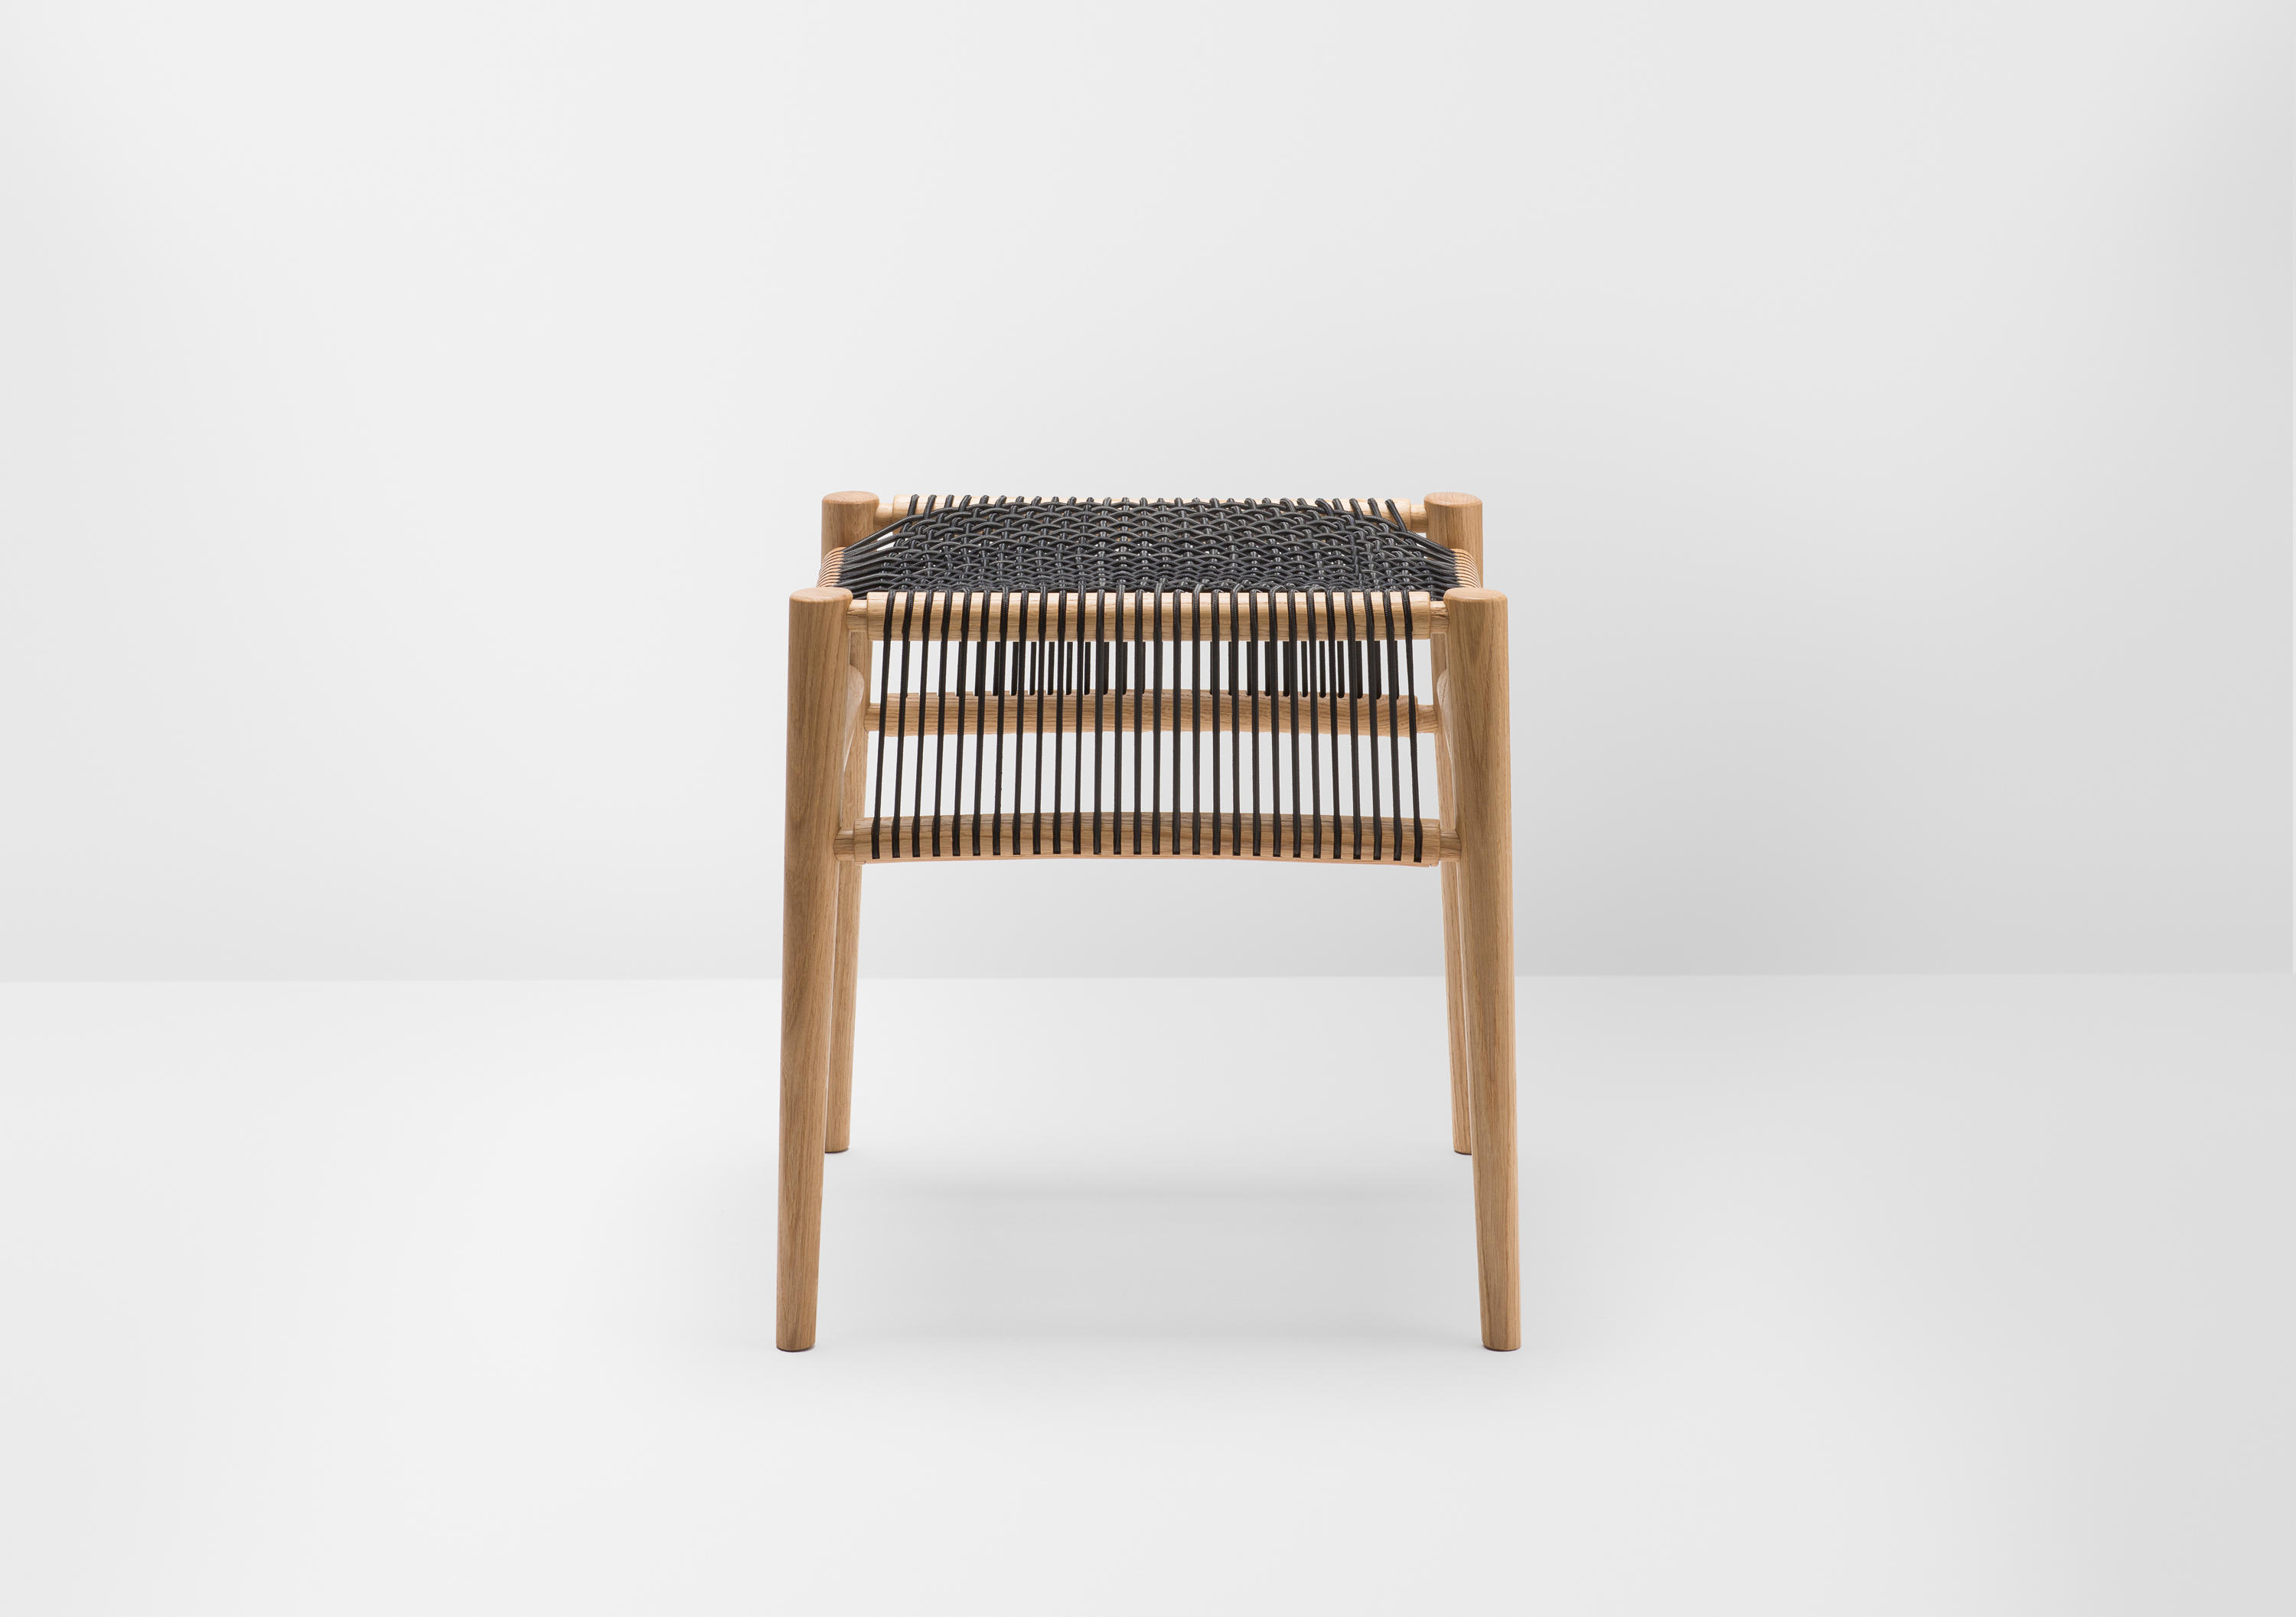 Loom stool stools from h furniture architonic for H furniture collection loom